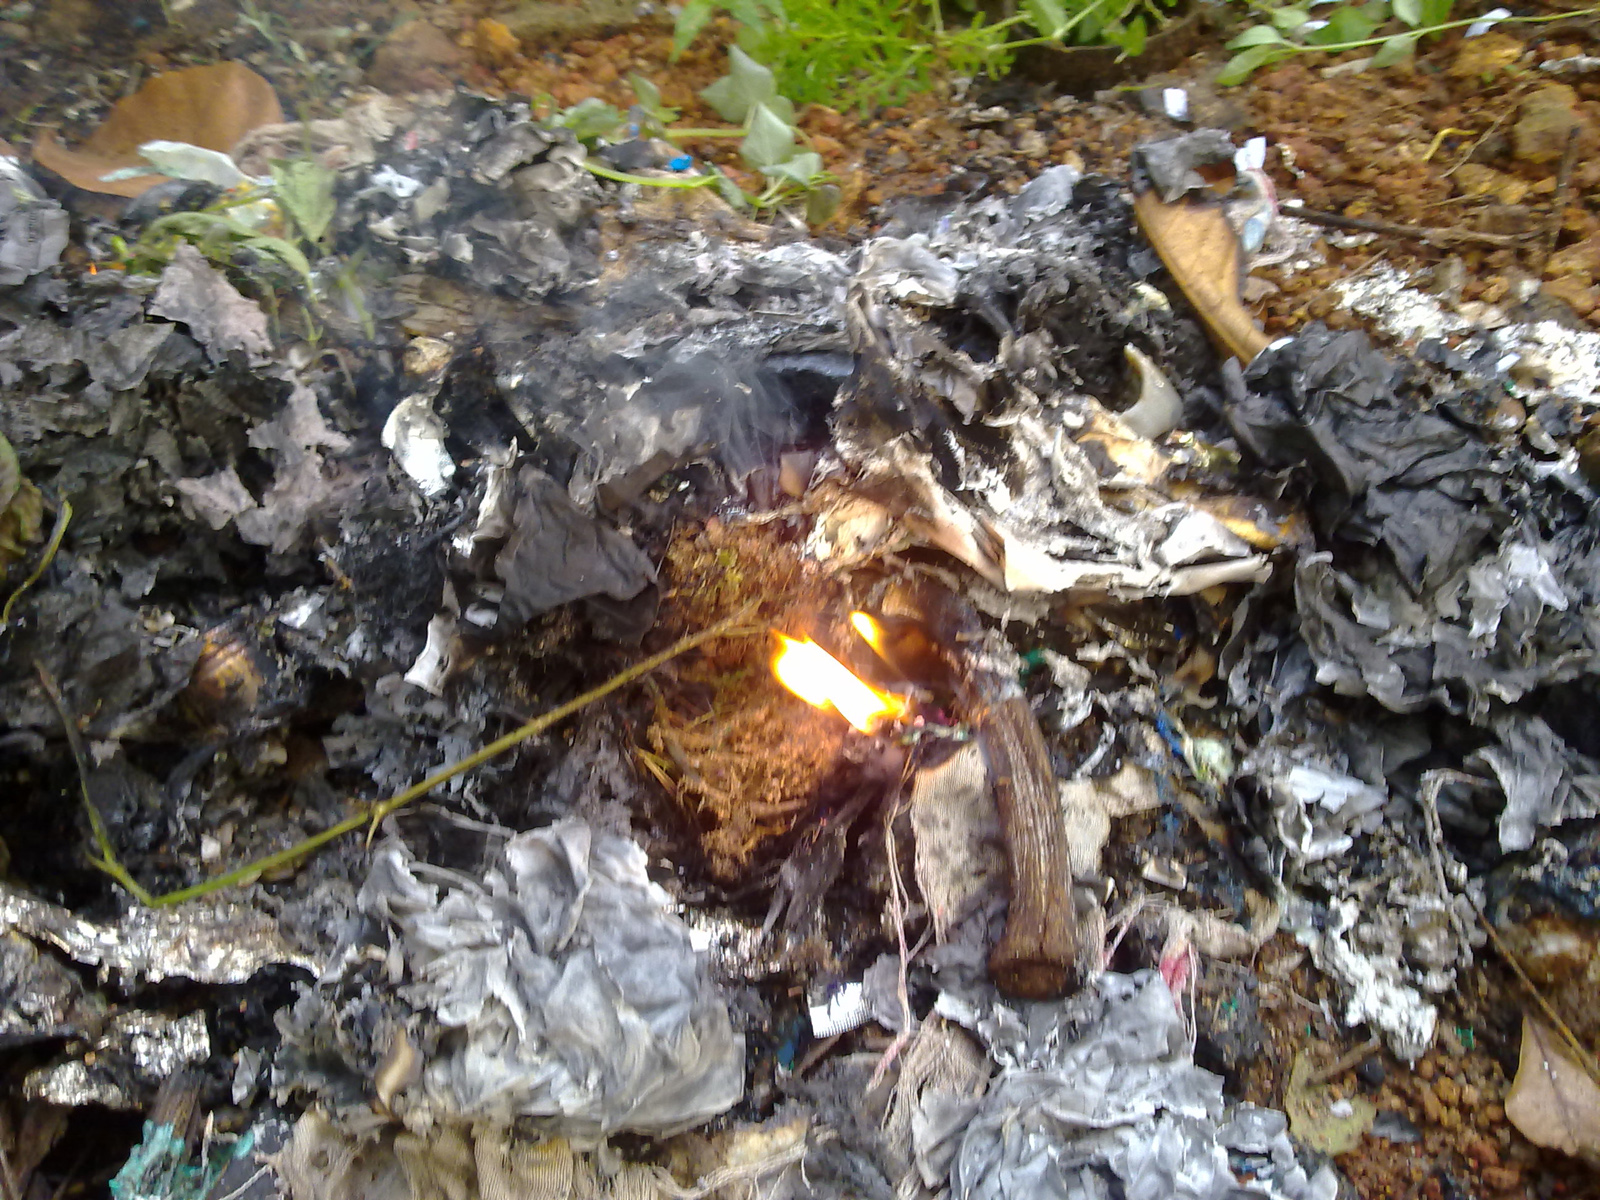 Waste Buring, Burn, Burning, Fire, Texture, HQ Photo